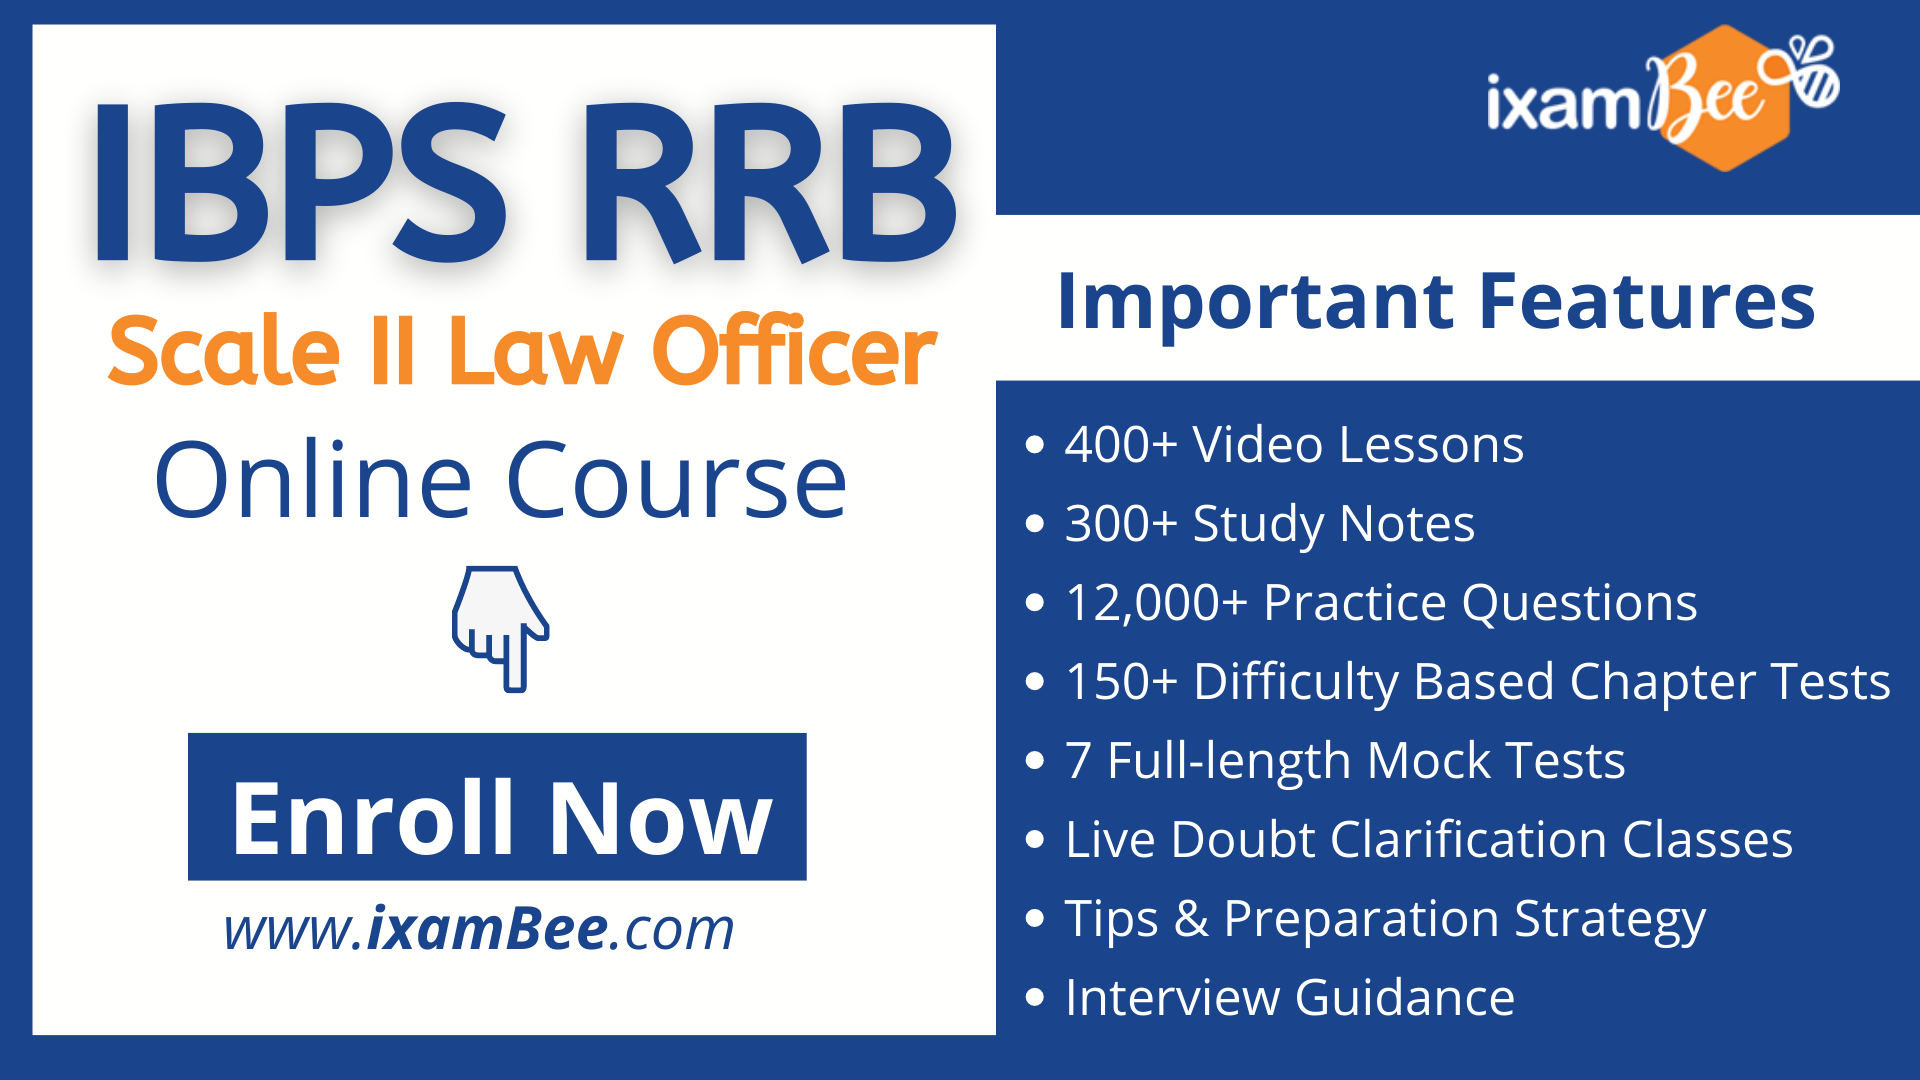 IBPS RRB Scale 2 LAW officer online course page